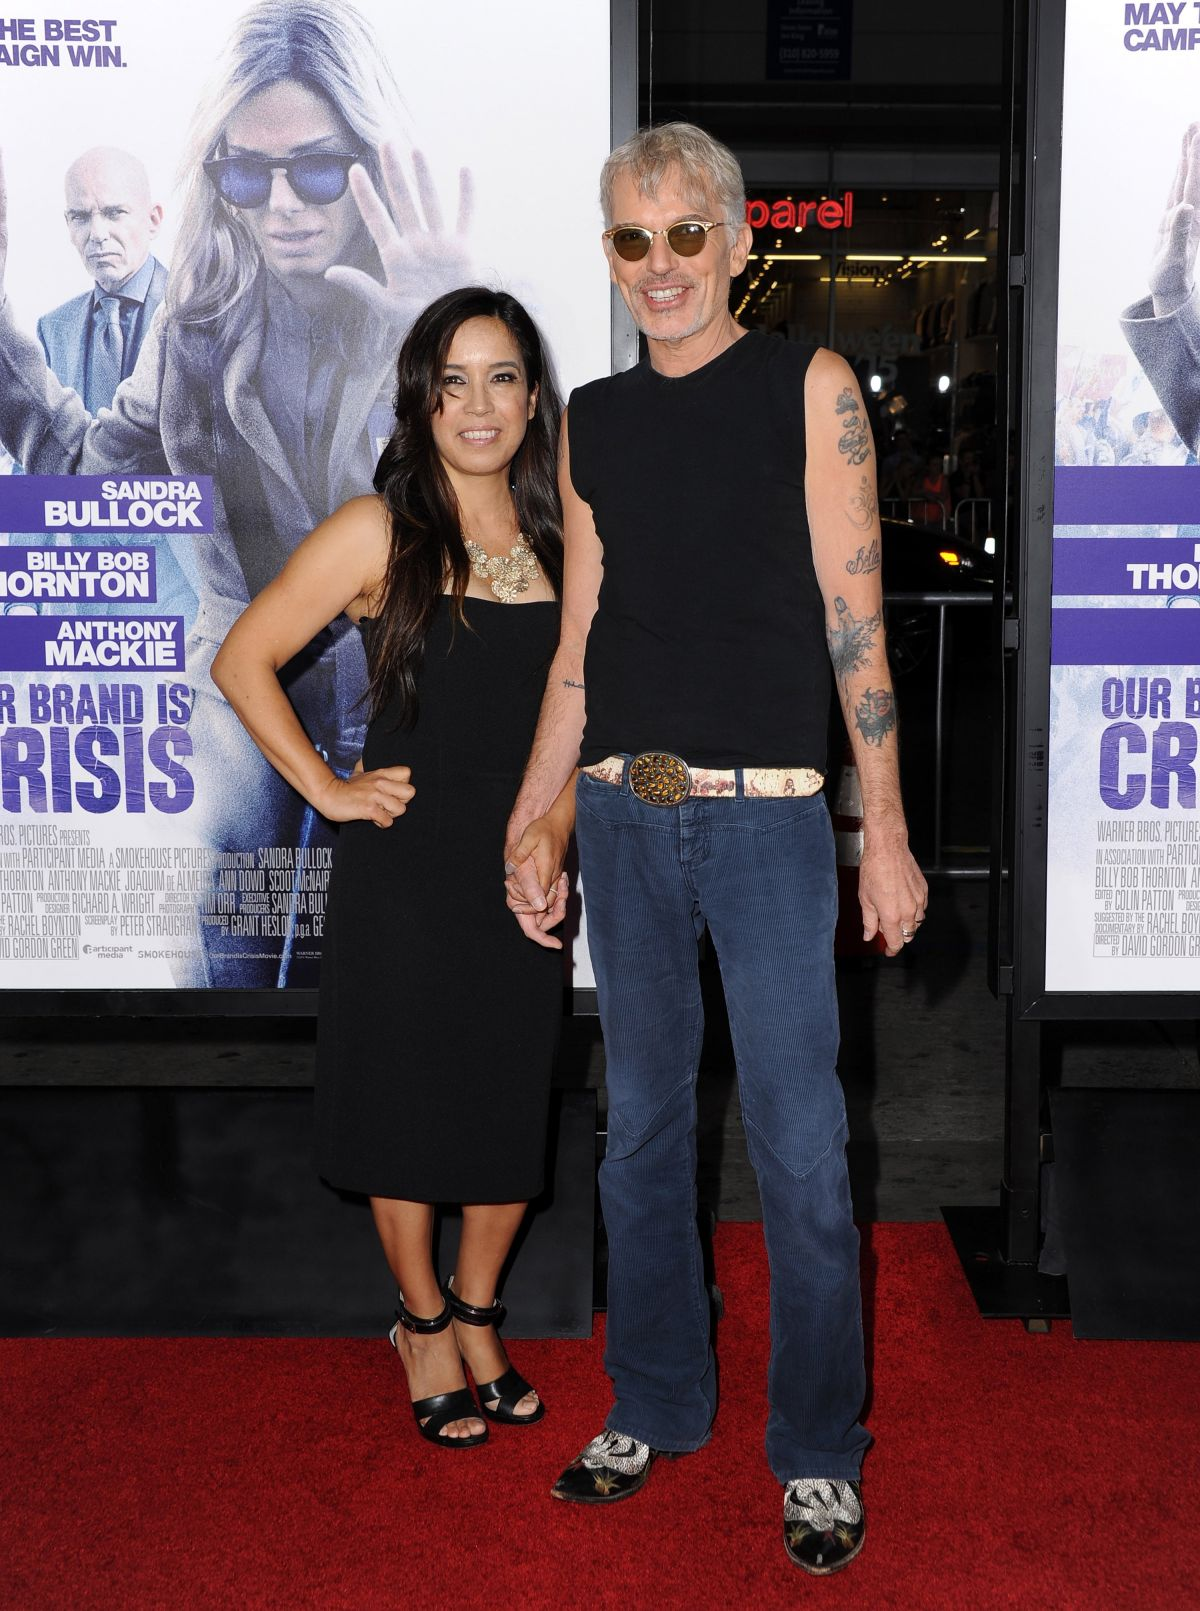 connie angland at our brand is crisis premiere in